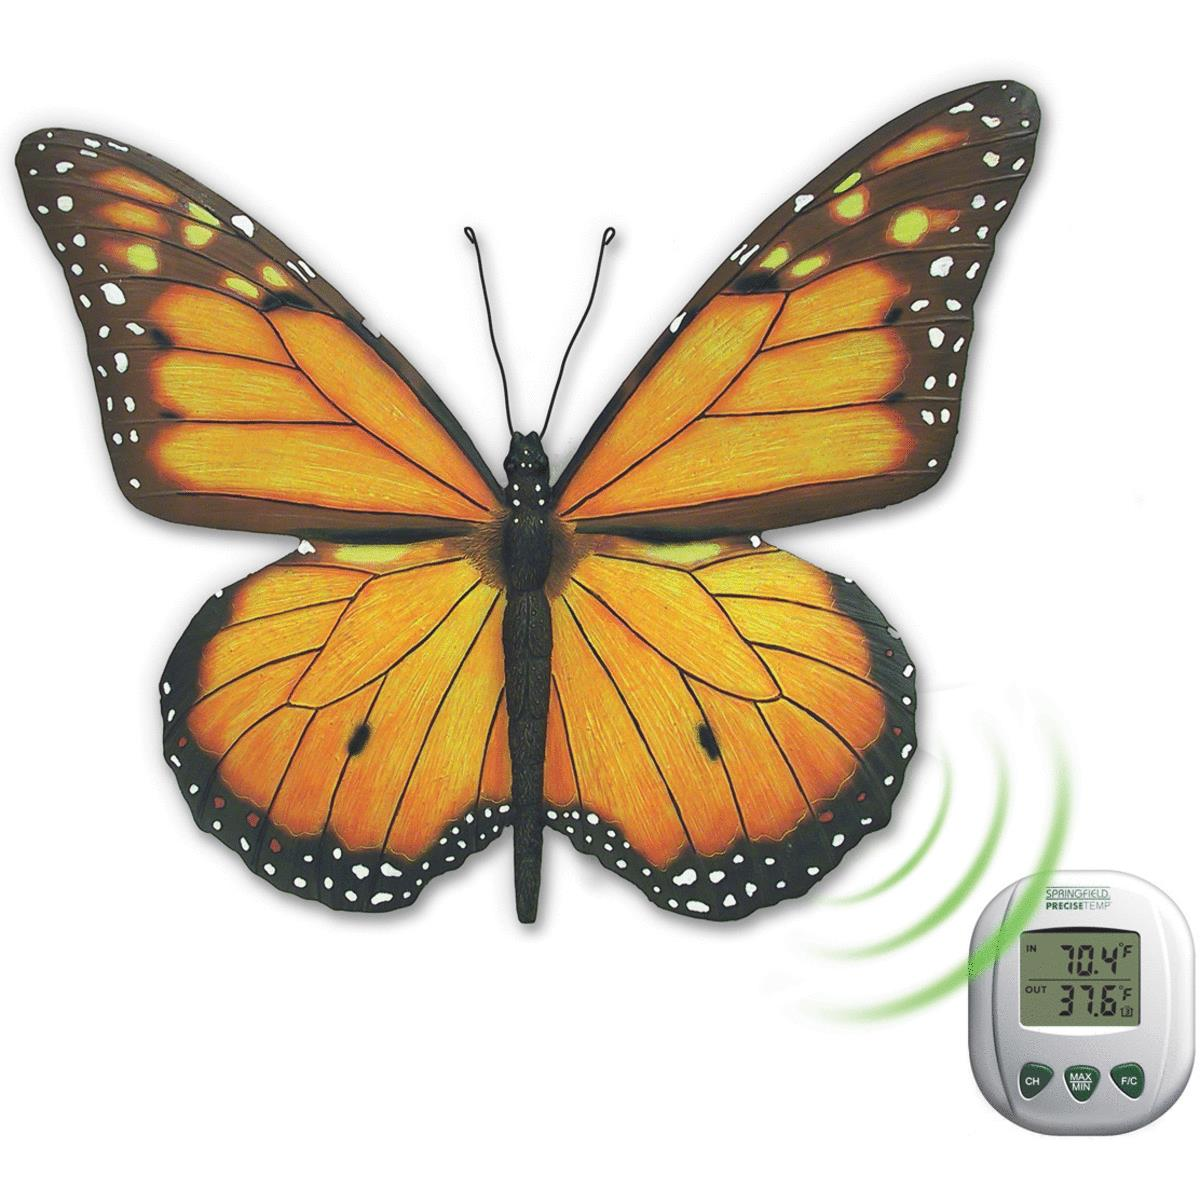 Butterfly Indoor And Outdoor Thermometer by Taylor Precision